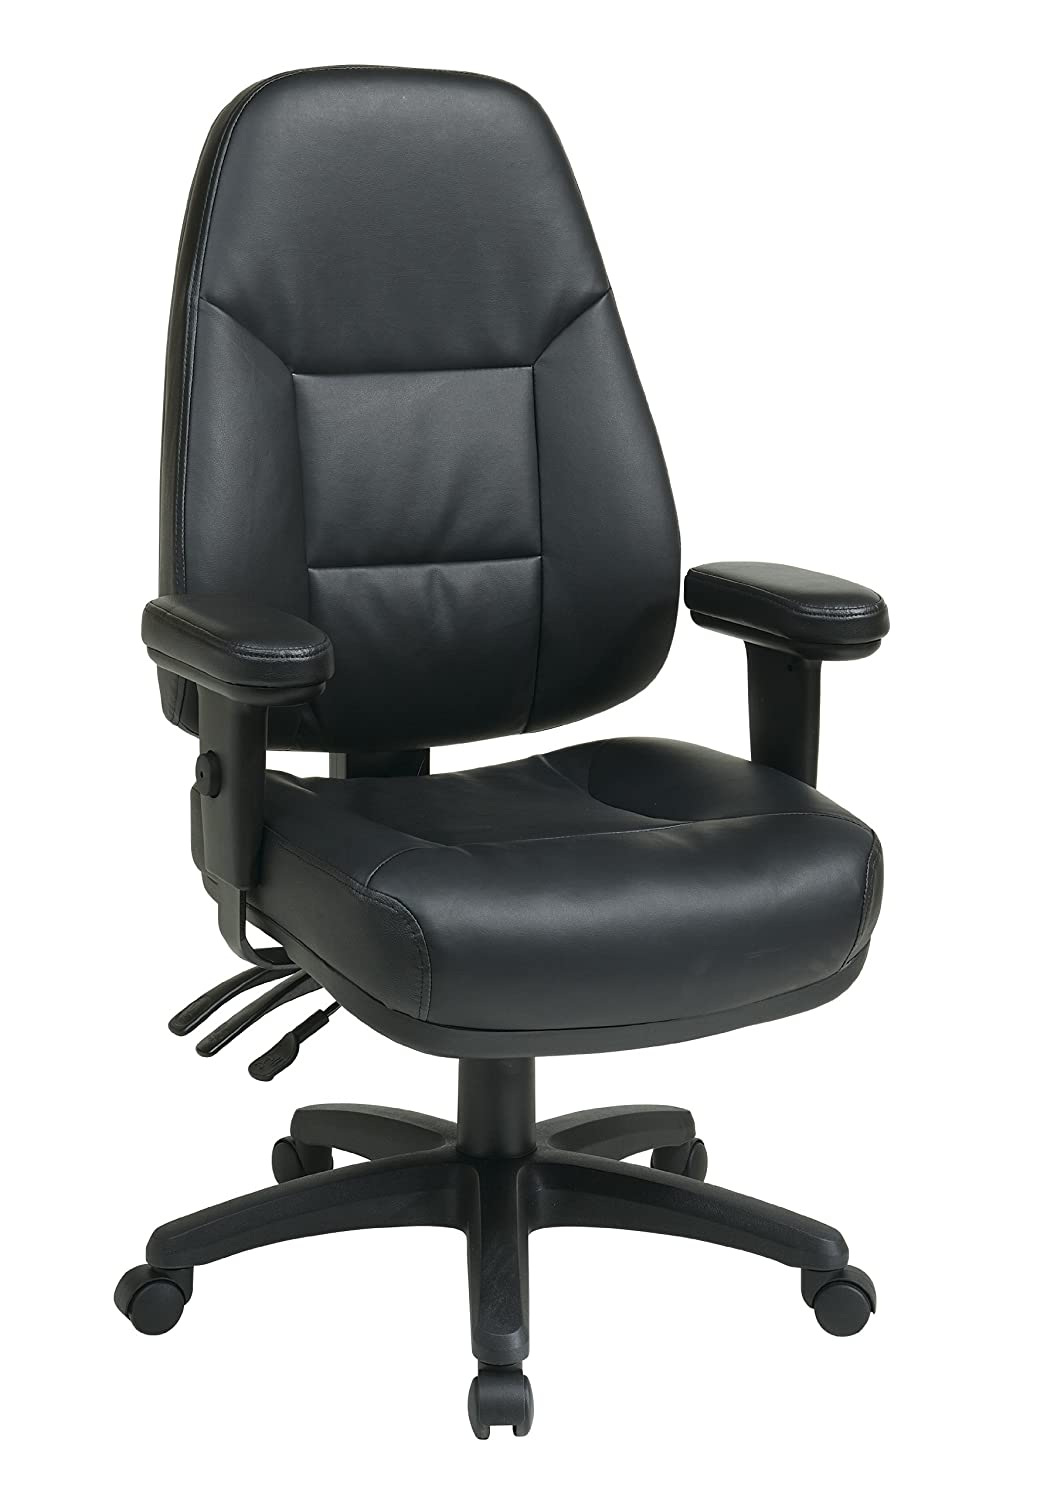 best orthopedic office chairs oprthopedic office chair. Black Bedroom Furniture Sets. Home Design Ideas